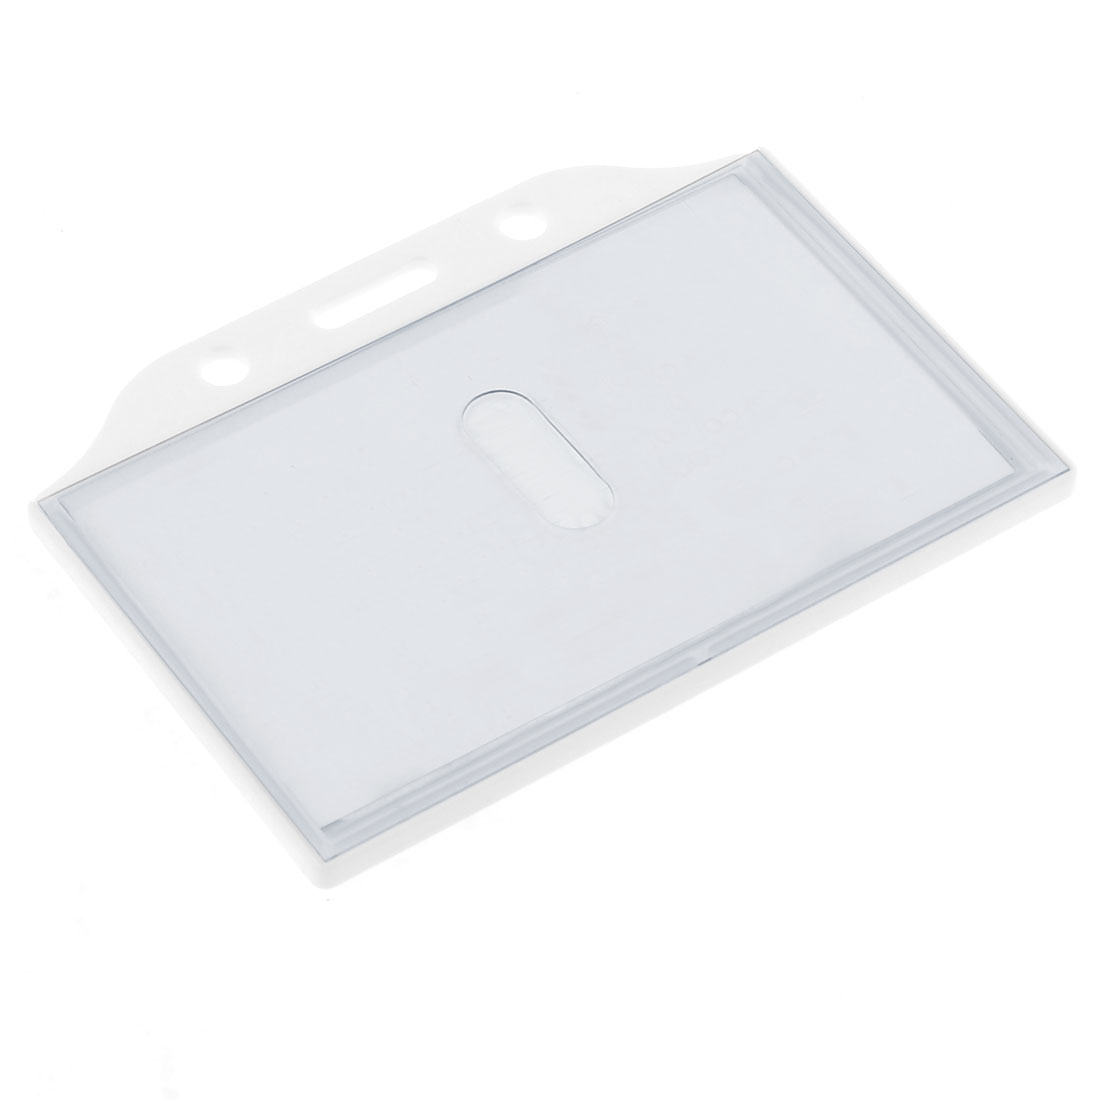 White Plastic Slide Type Office Position Card Holder